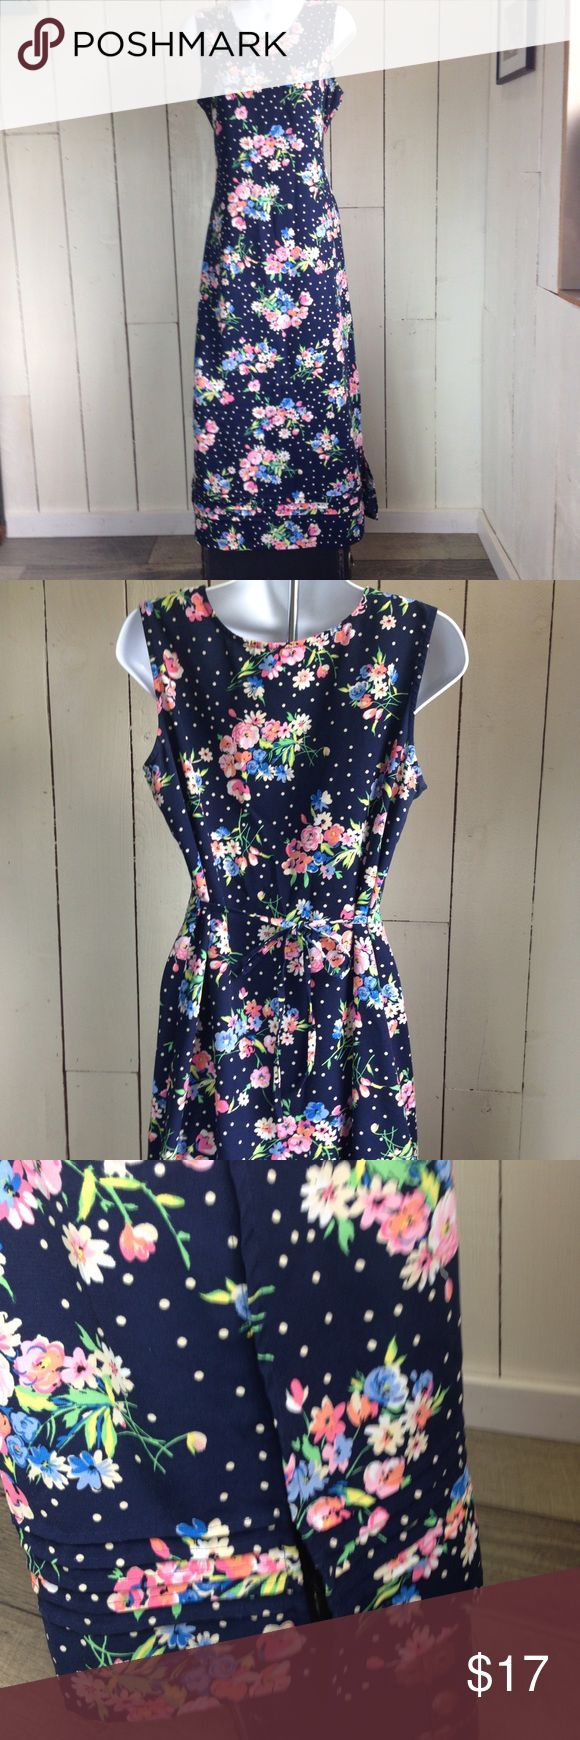 Polka Dot Sag Harbor Petites Dress Darling tea length dress with side split and pleated hem. Gently Worn. Easy Care - Machine Wash, Hang Dry. The sweater is not included but listed separately. I love the way the sweater compliments the dress and often wore them together. Please let me know if I can answer any questions for you. Sag Harbor Dresses Midi